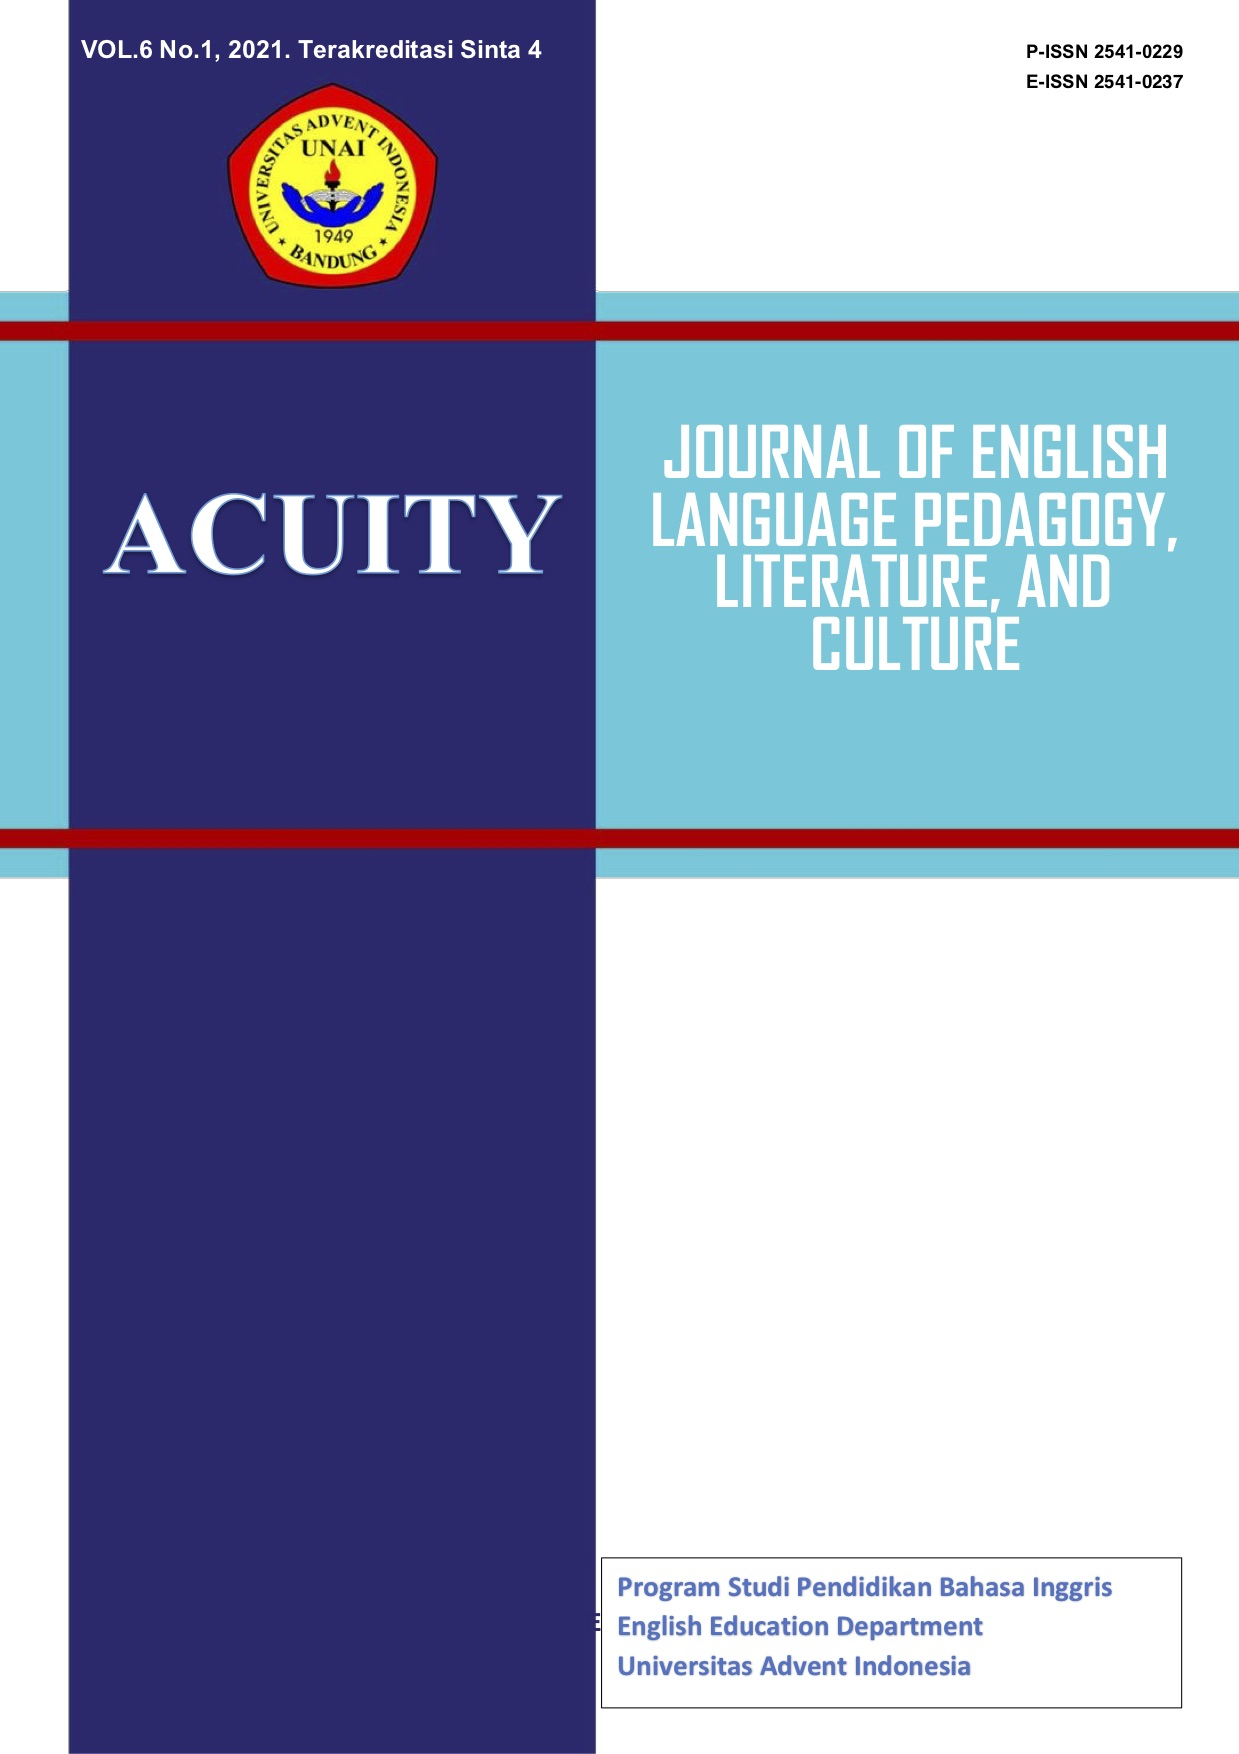 View Vol. 6 No. 1 (2021): Acuity: Journal of English Language Pedagogy, Literature & Culture